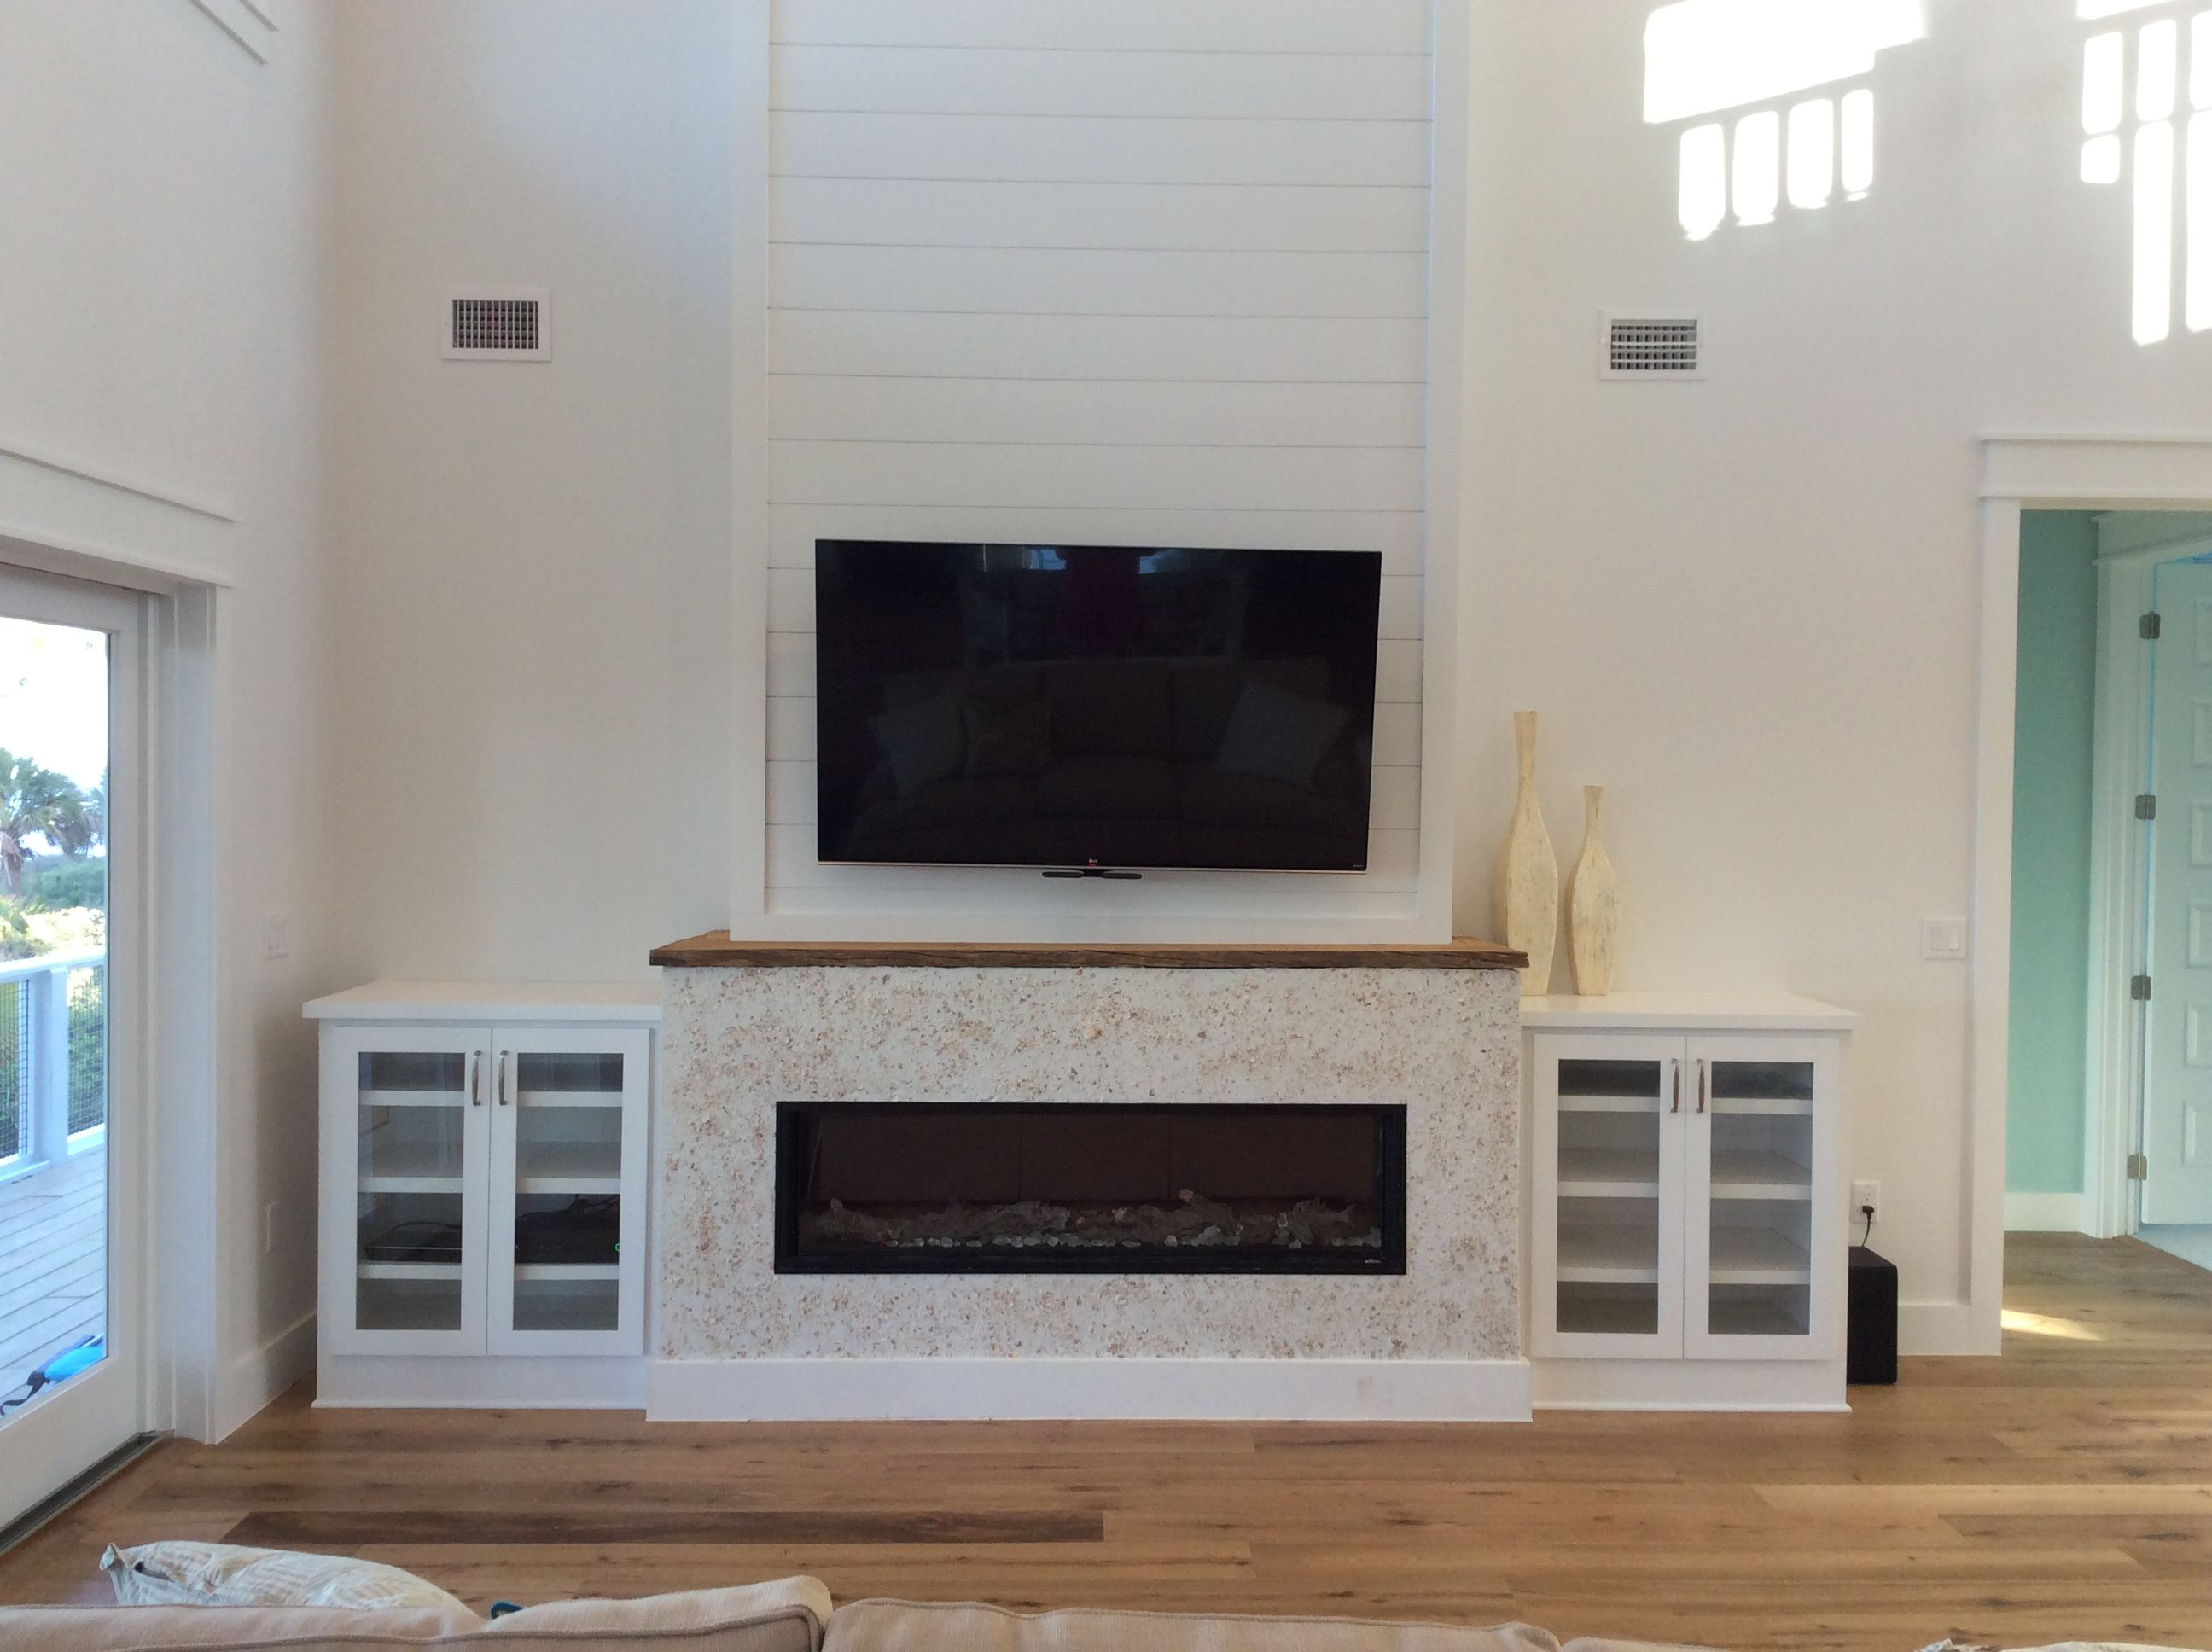 (Not finished yet). MantleMount, tv above linear fireplace